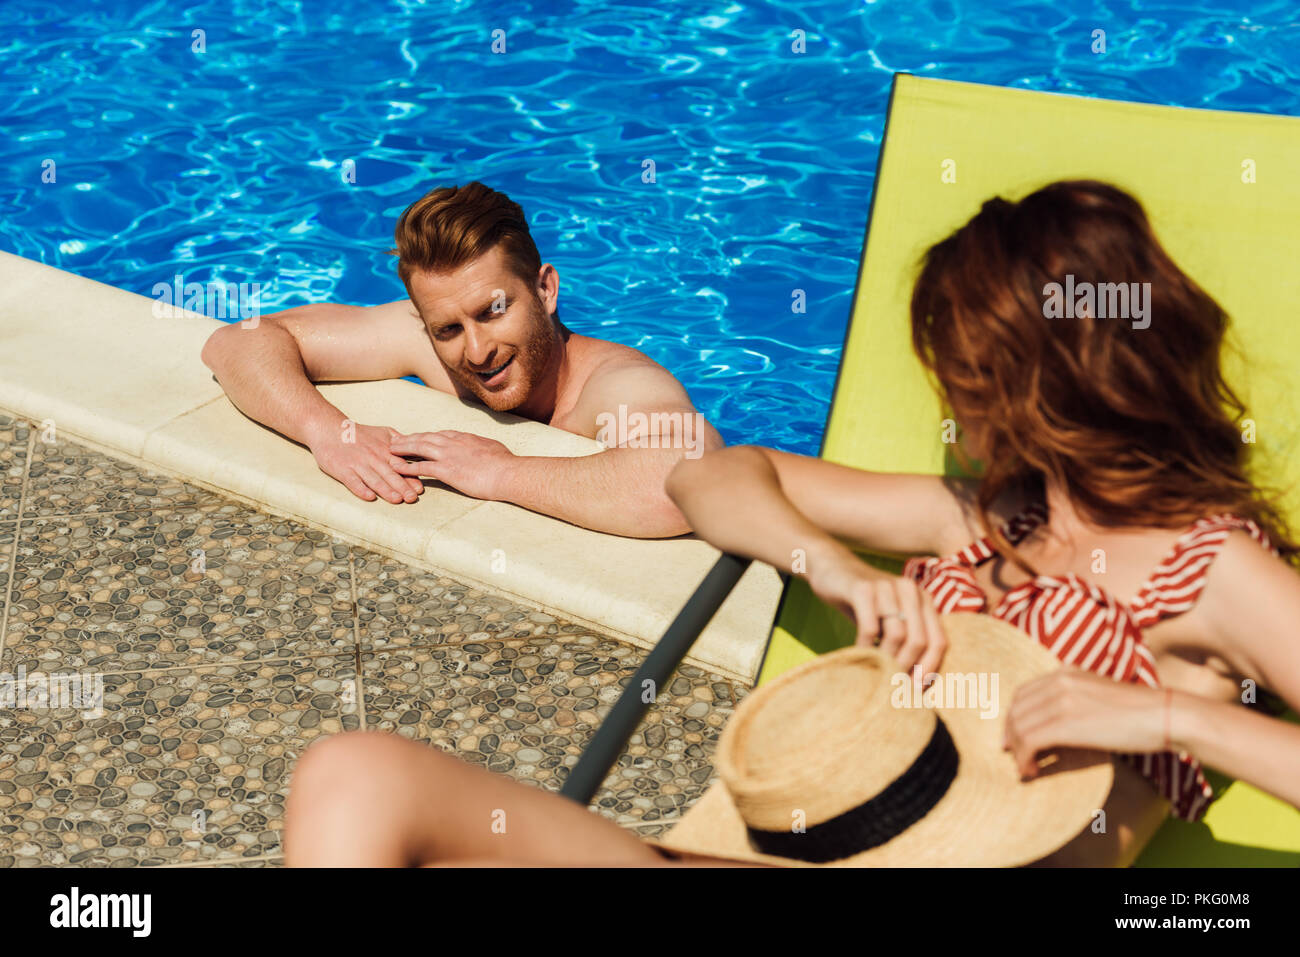 young man flirting with woman lying on sun lounger while swimming in pool - Stock Image